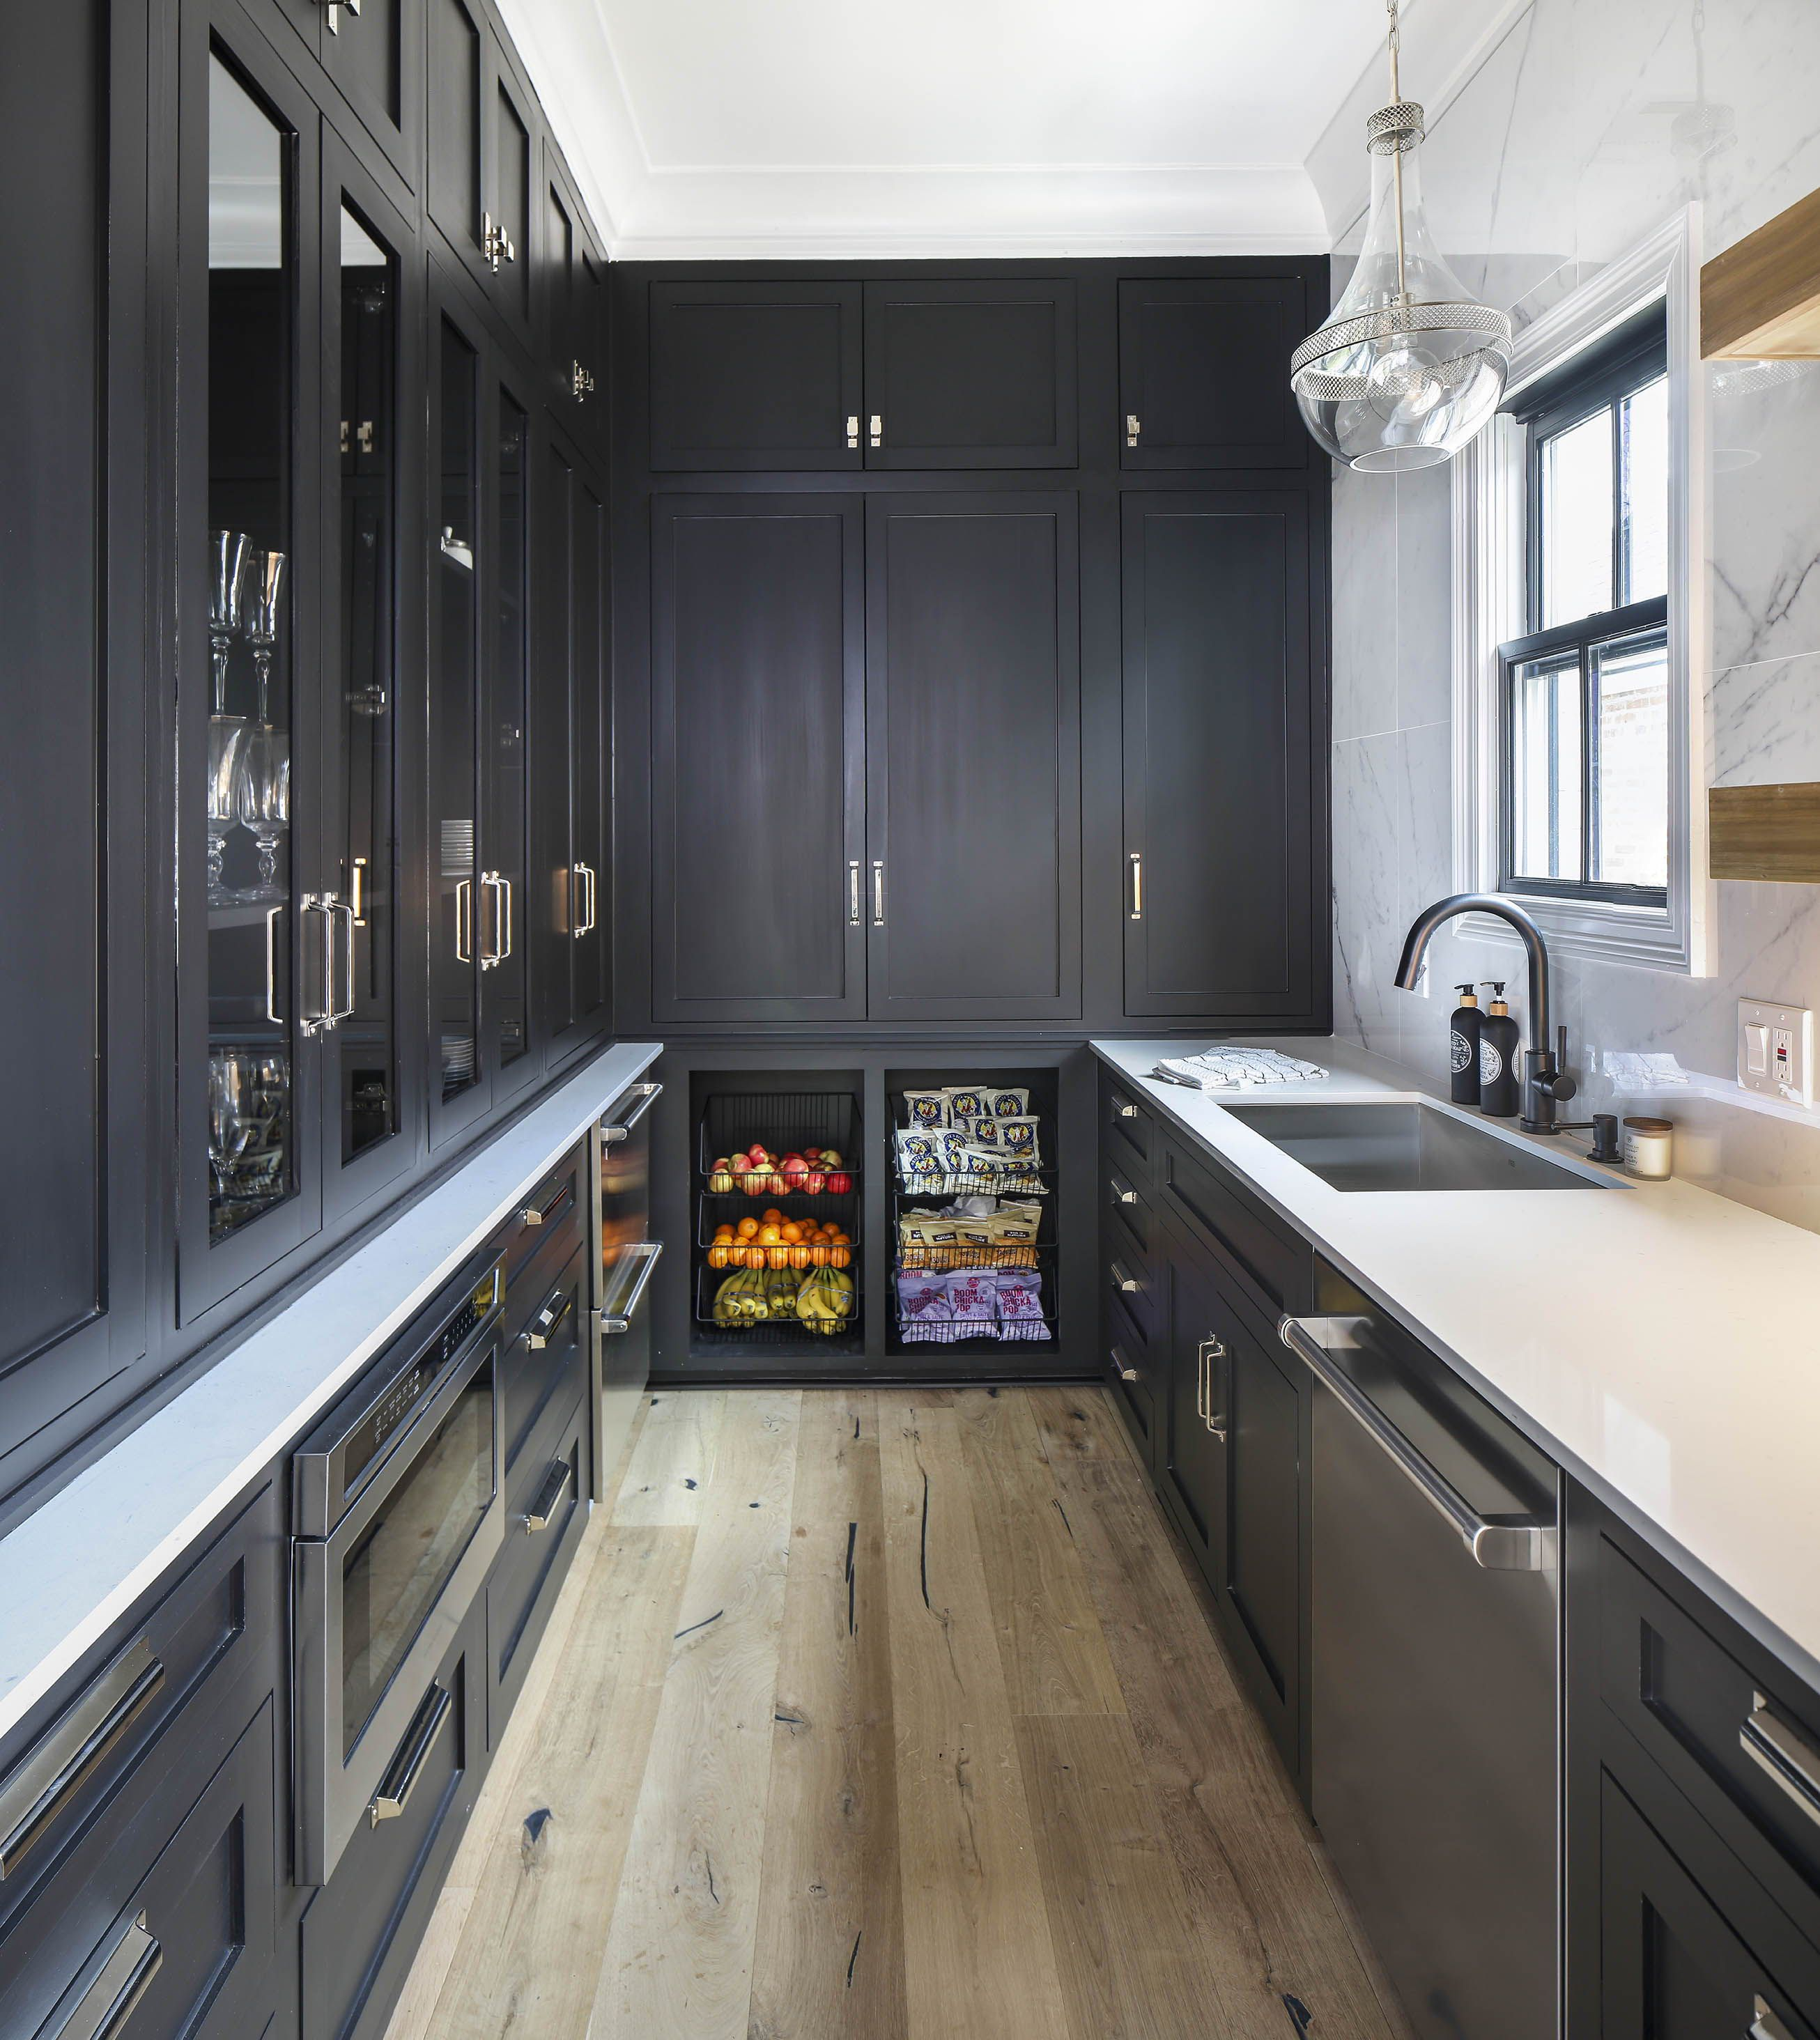 Large Pantry Or Back Kitchen Designed By Arianne Bellizaire Interiors Featuring Glamorous Black Cabinets Kitchen Pantry Design Pantry Design Kitchen Design